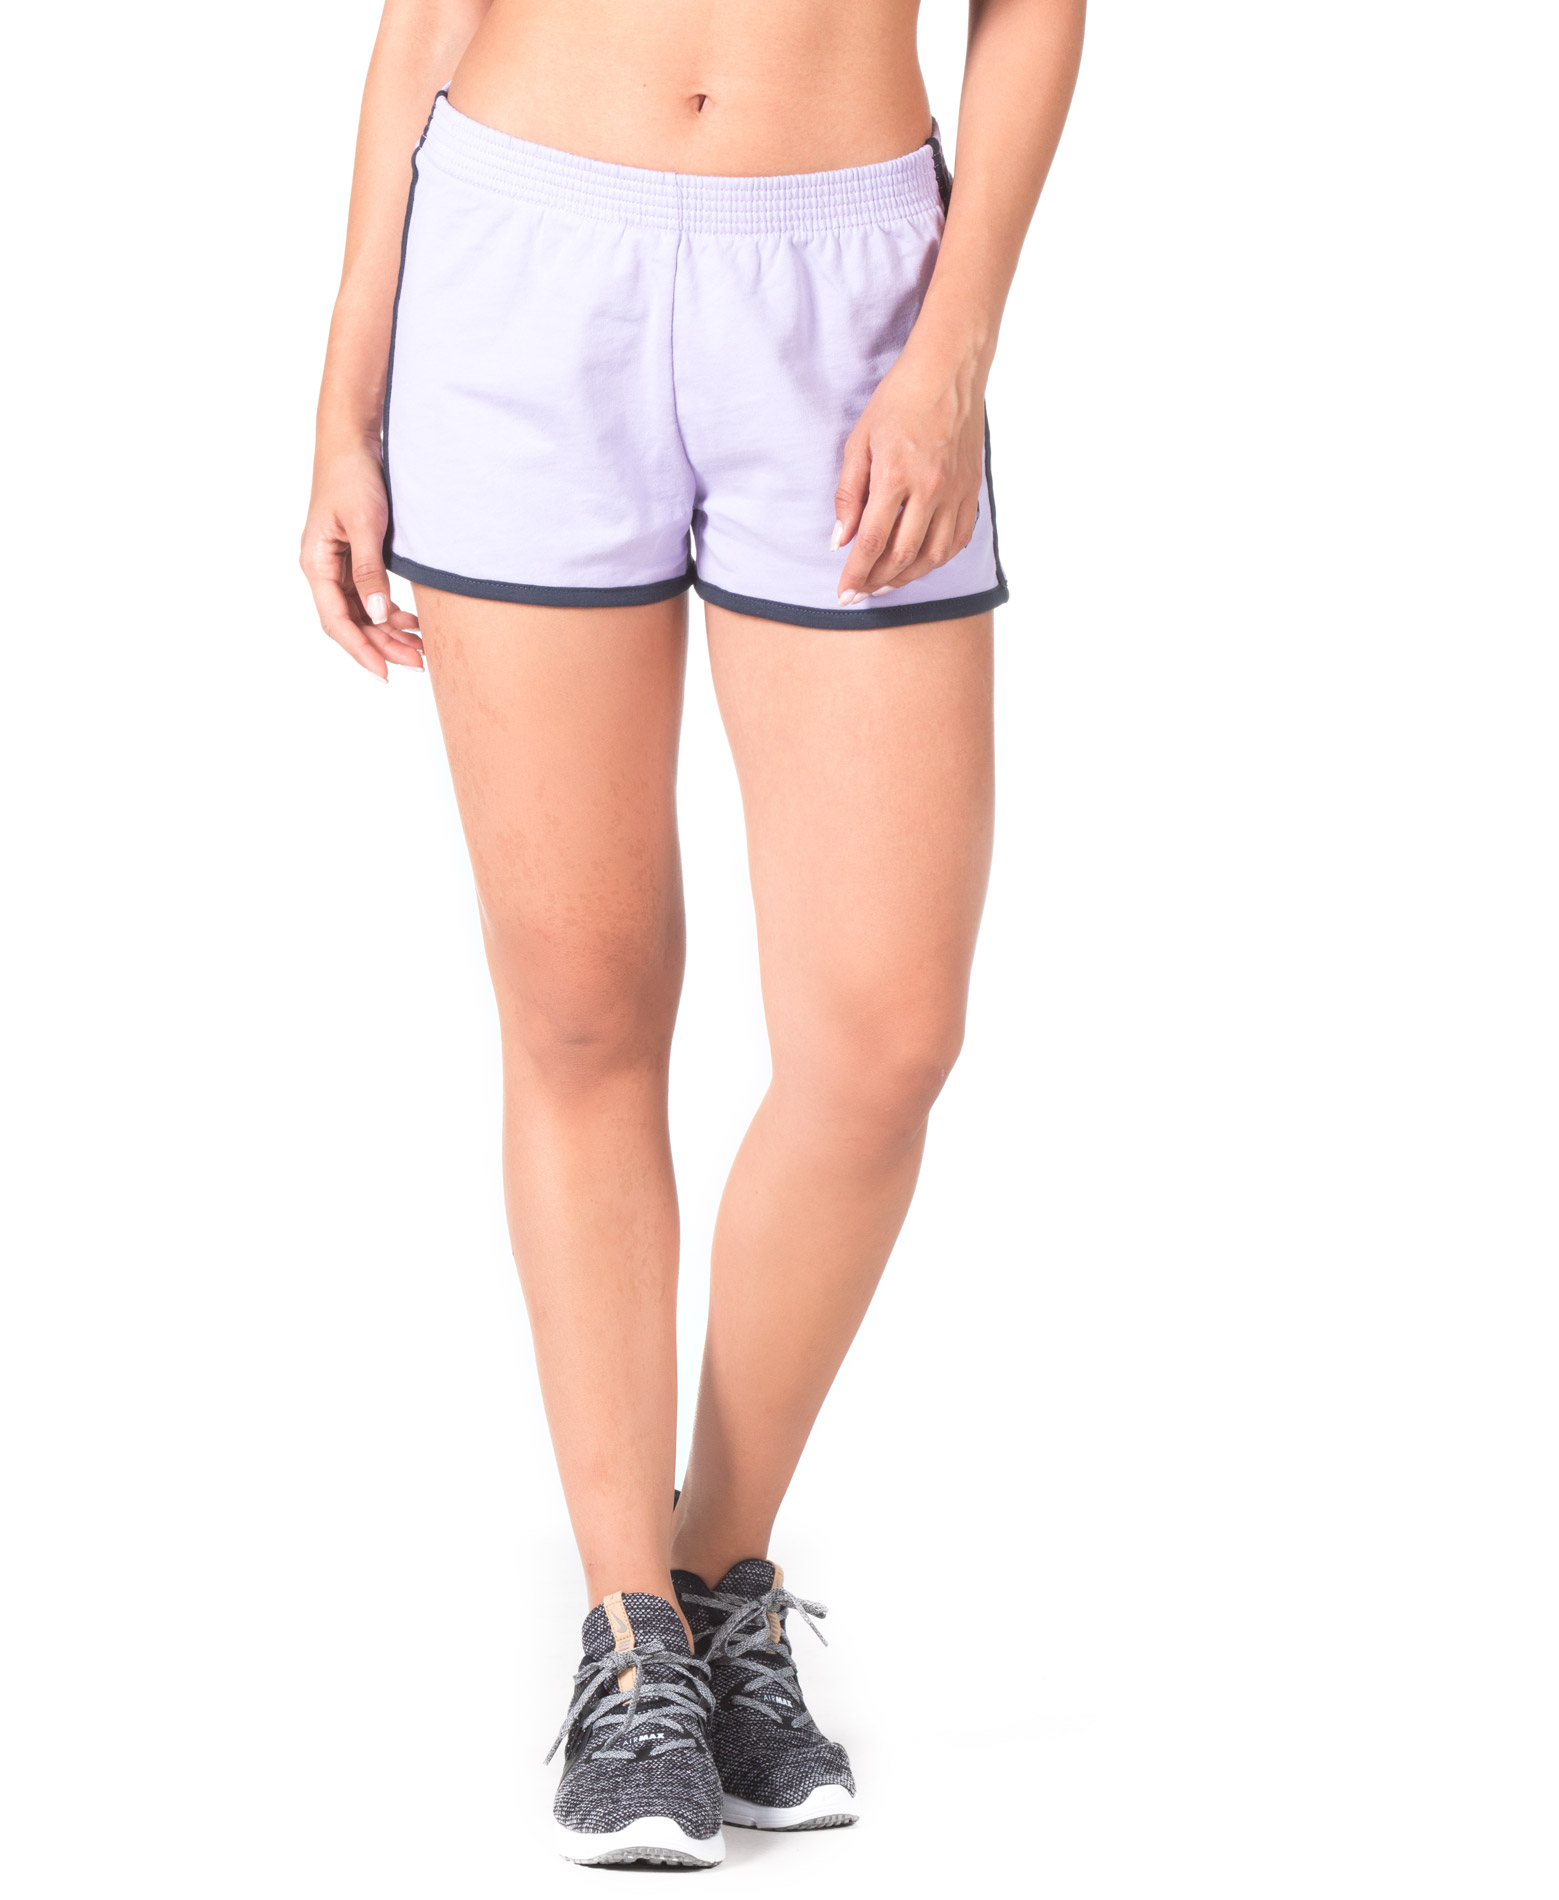 GSA WMN VINTAGE SHORTS GLORY _ HERITAGE 88-2638-PURPLE Μωβ